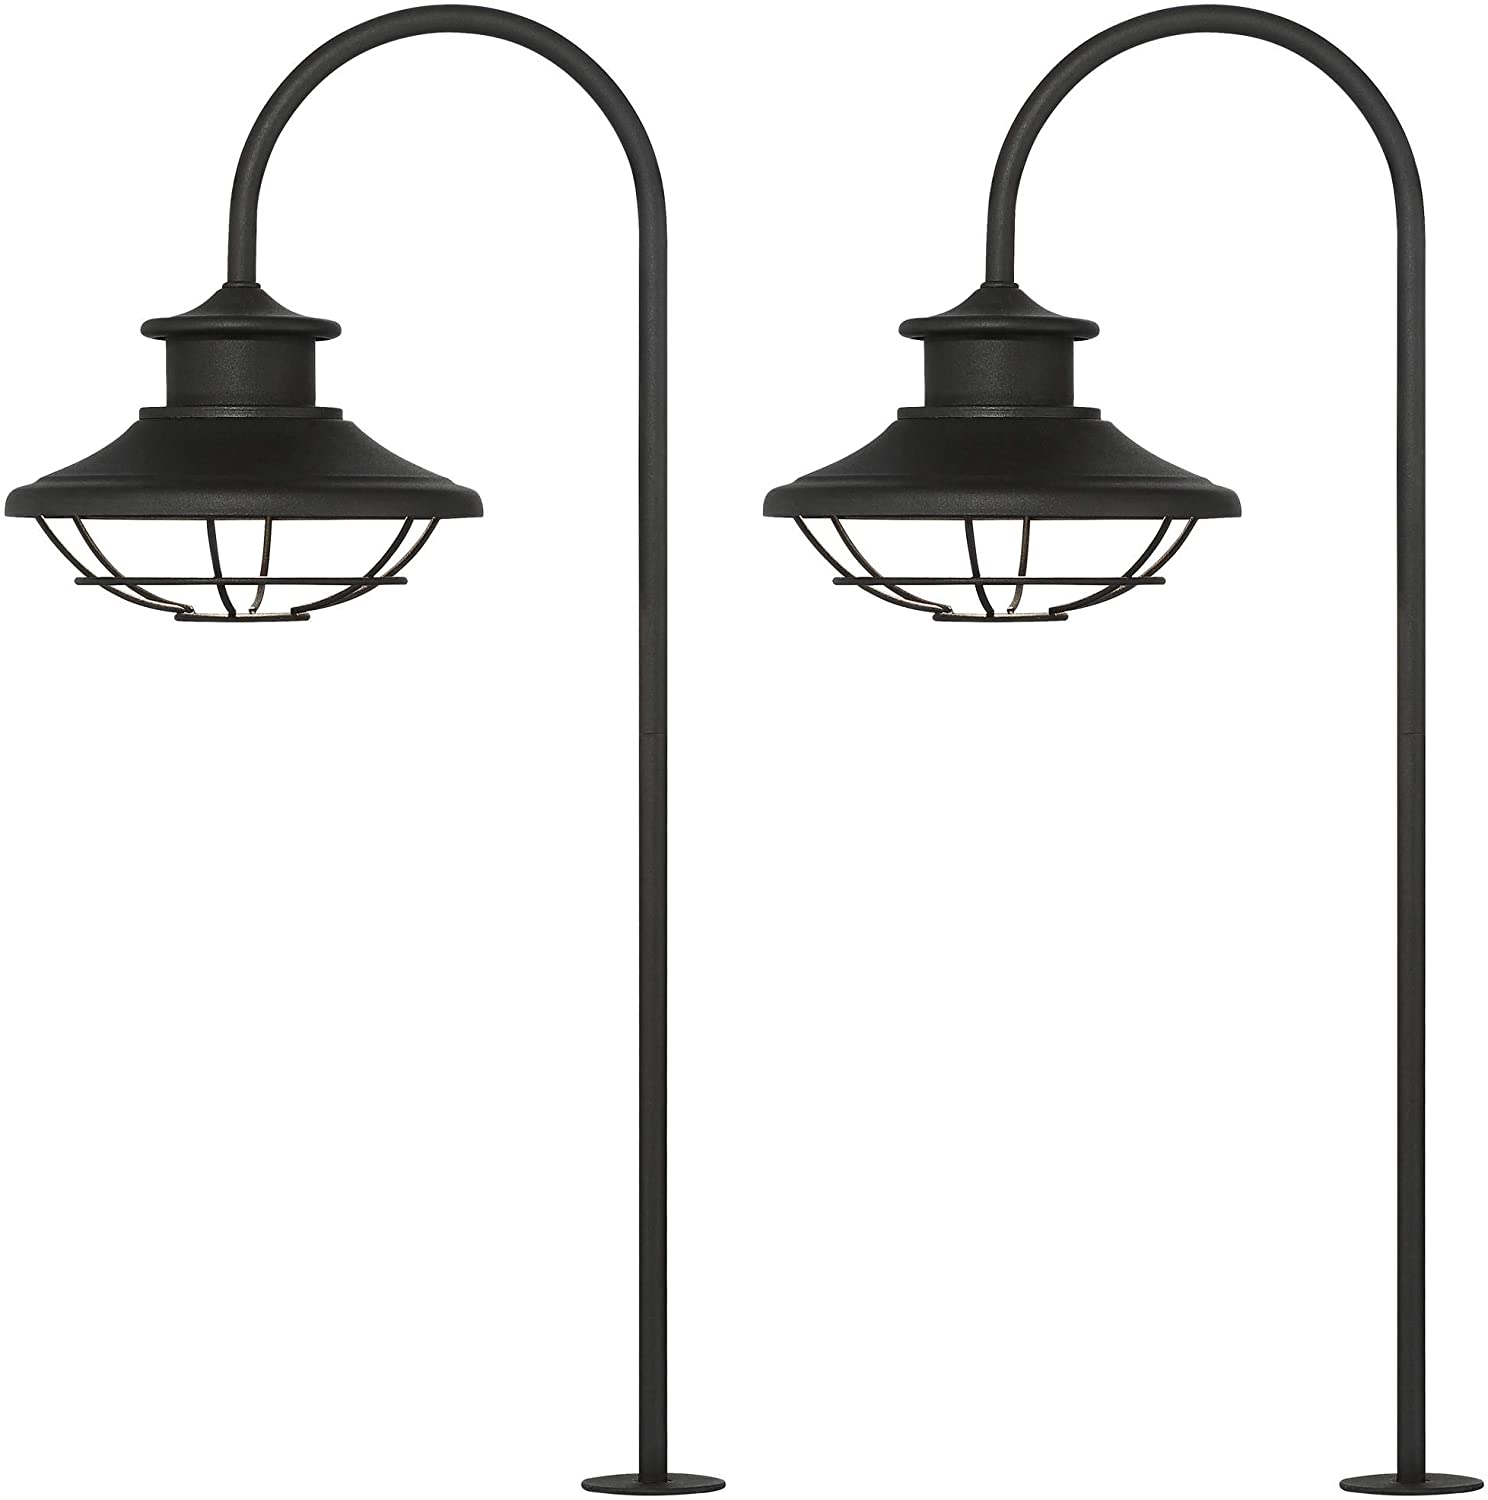 Braden 23 1/2″ High Textured Black Led Path Lights Set Of In Fashionable Sheard Textured Black 2 – Bulb Wall Lanterns (View 8 of 15)